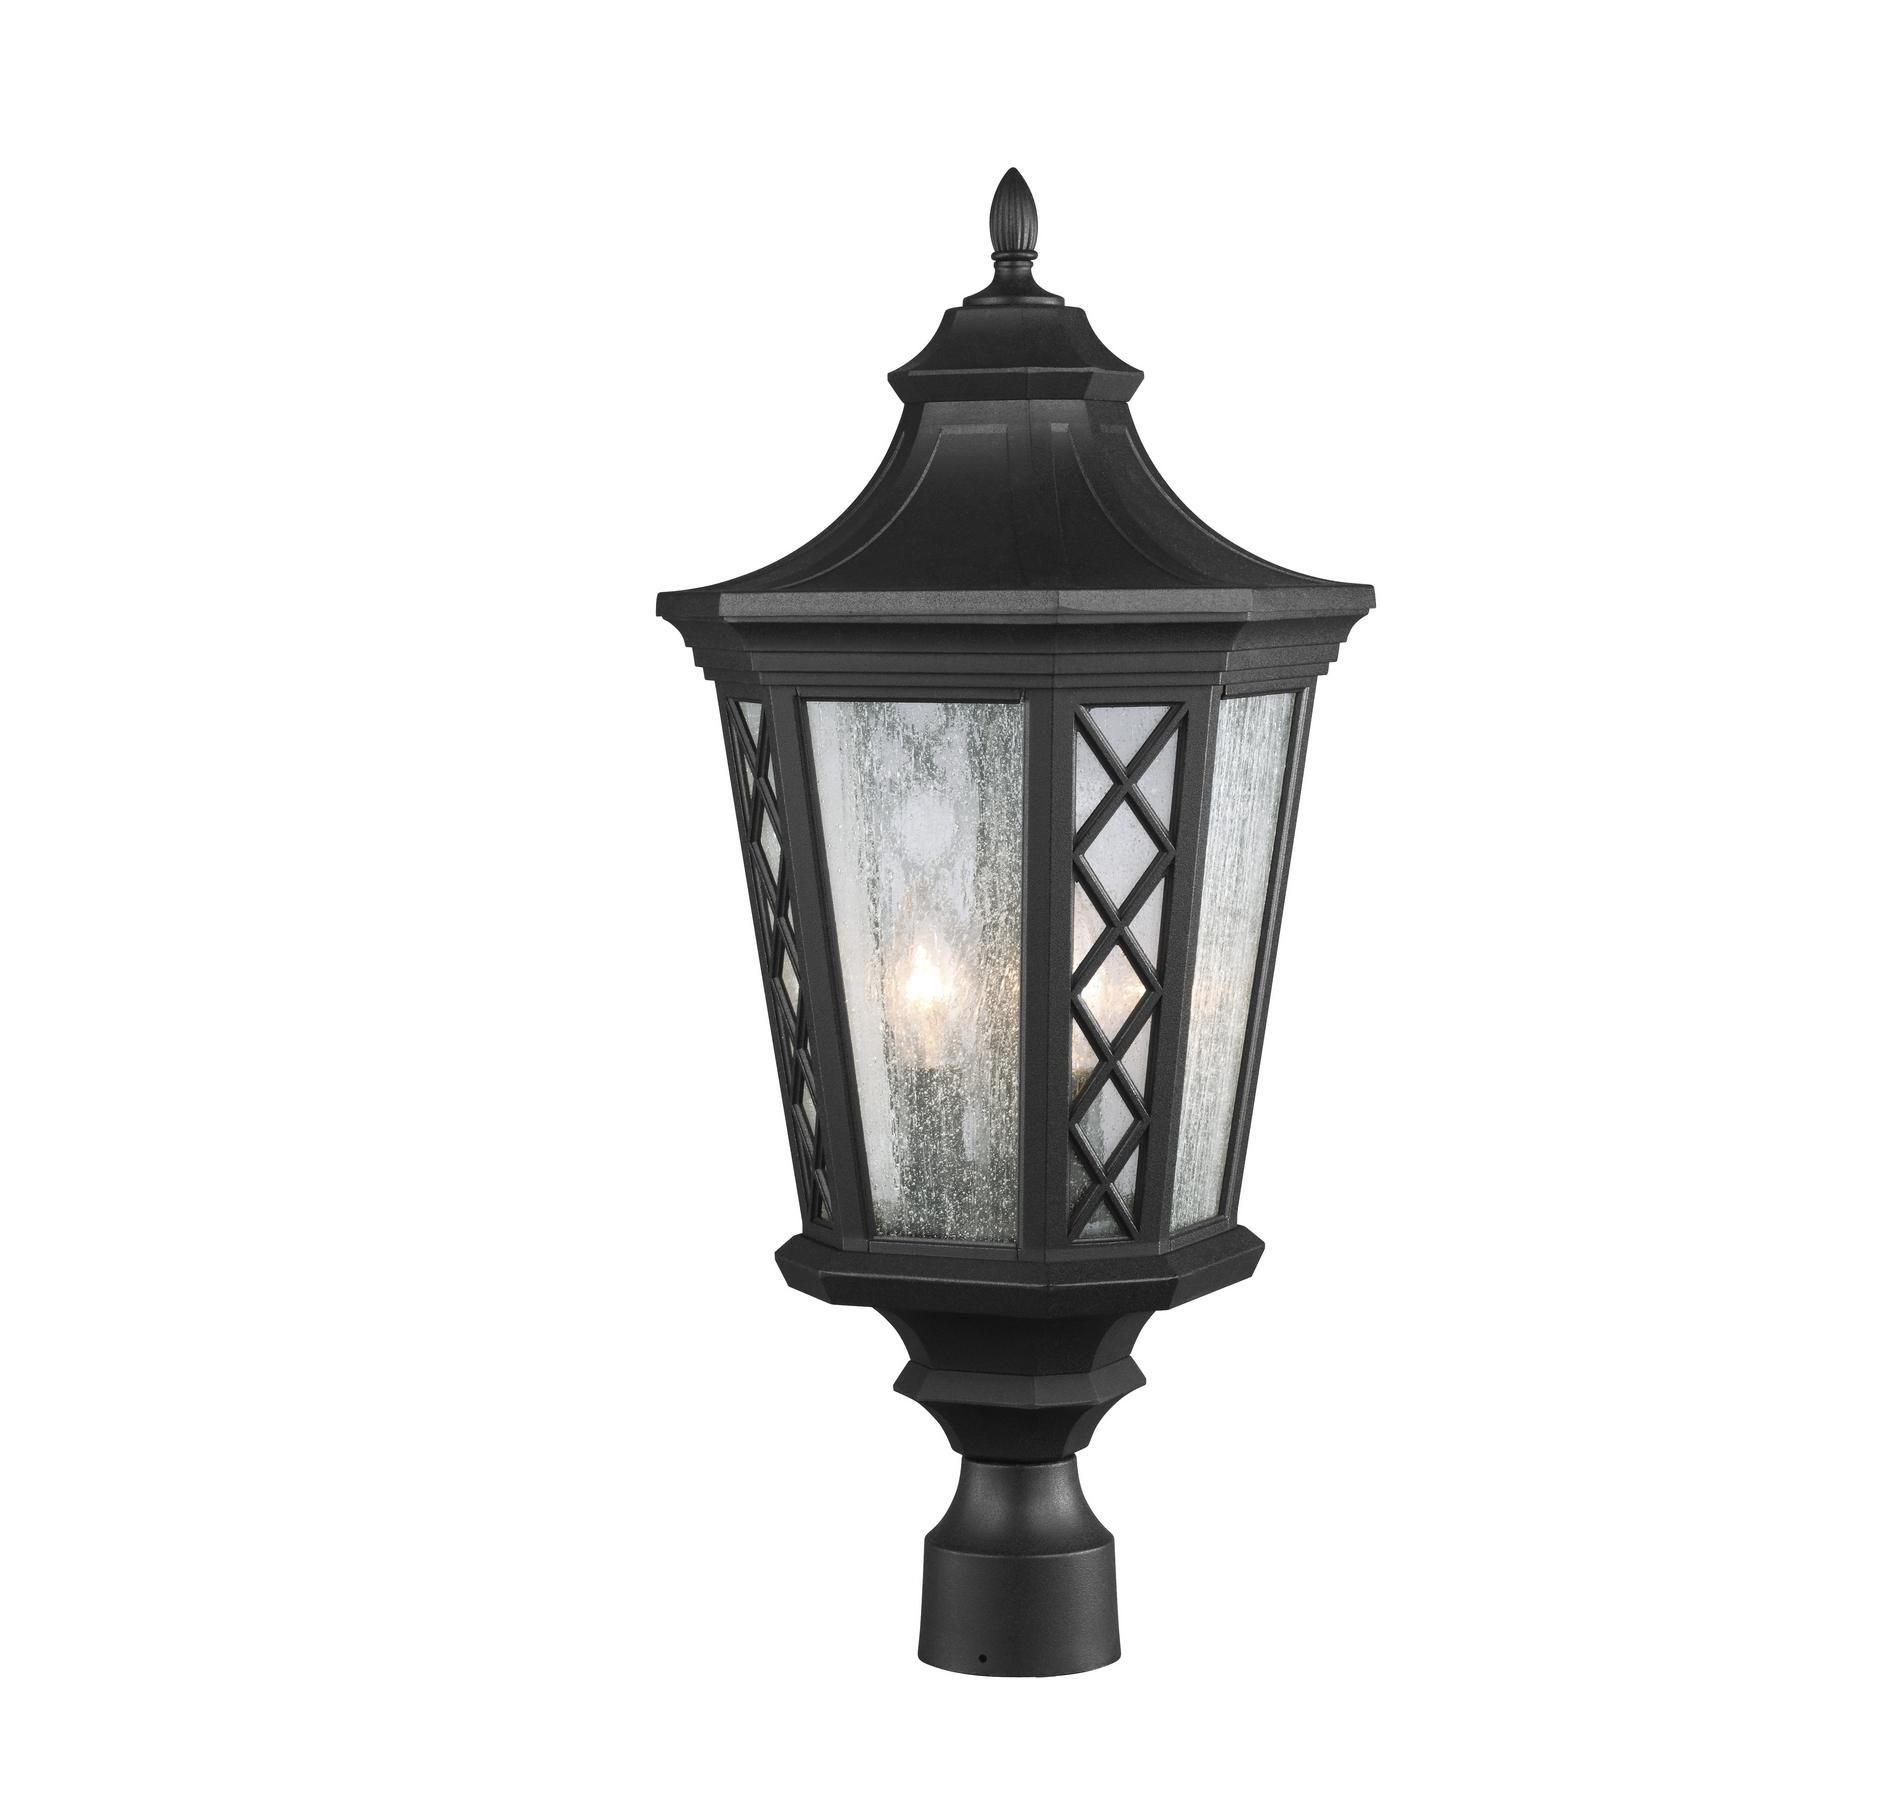 Feiss Ol9508Txb Wembley Park 3-Light Textured Black Outdoor Lantern with Outdoor Lanterns on Post (Image 4 of 20)